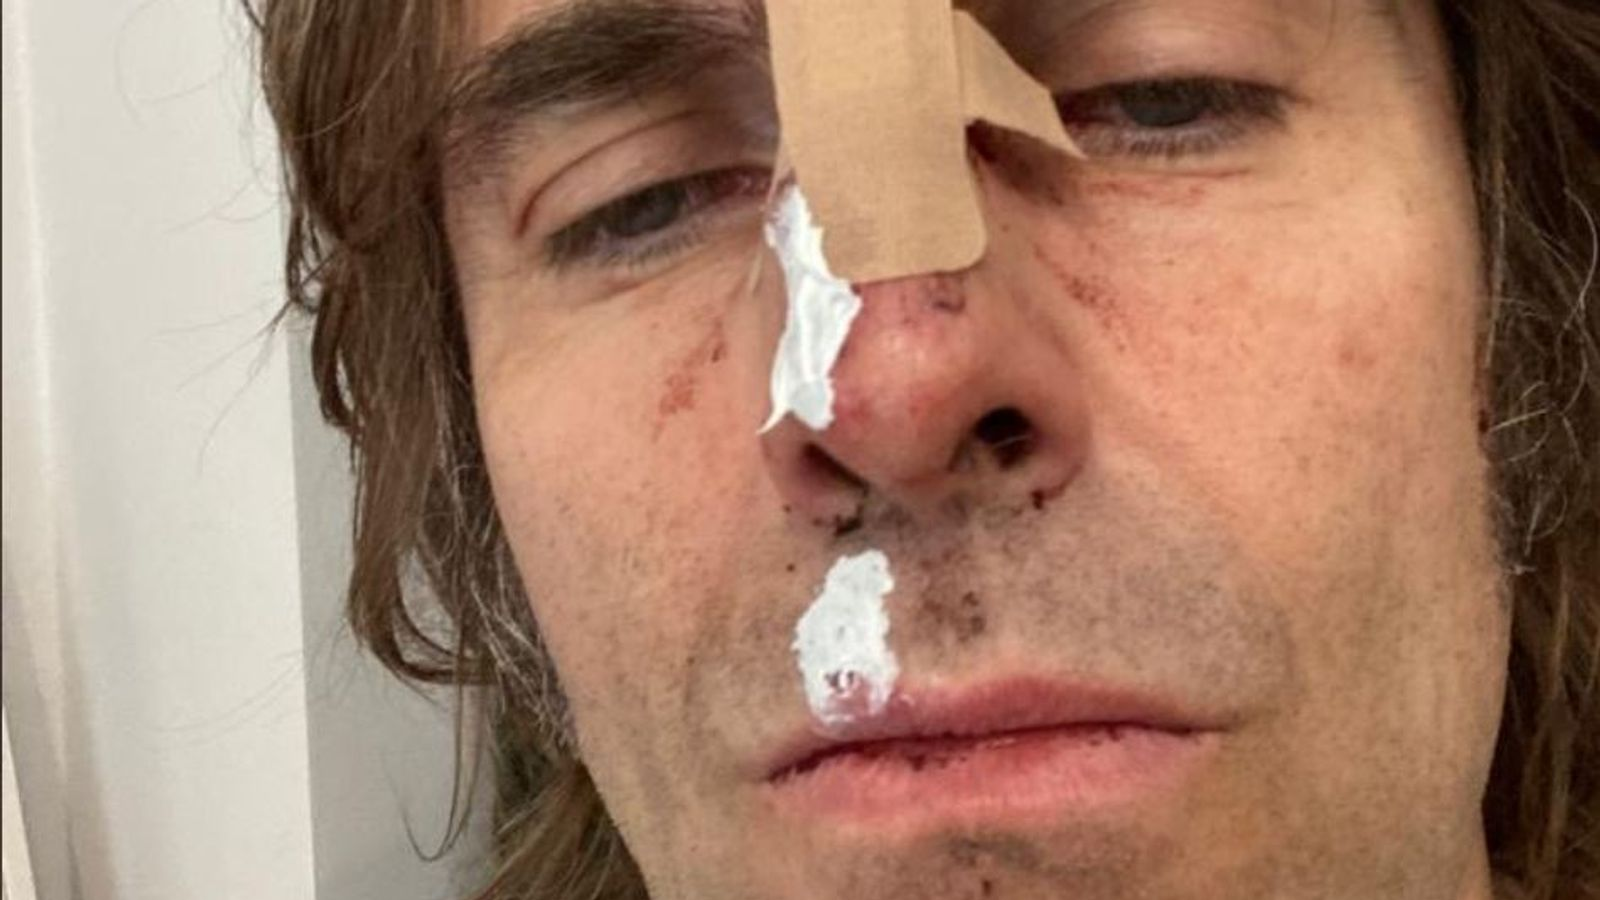 Liam Gallagher 'fell out the helicopter' after Isle Of Wight Festival and shares photo of scraped face